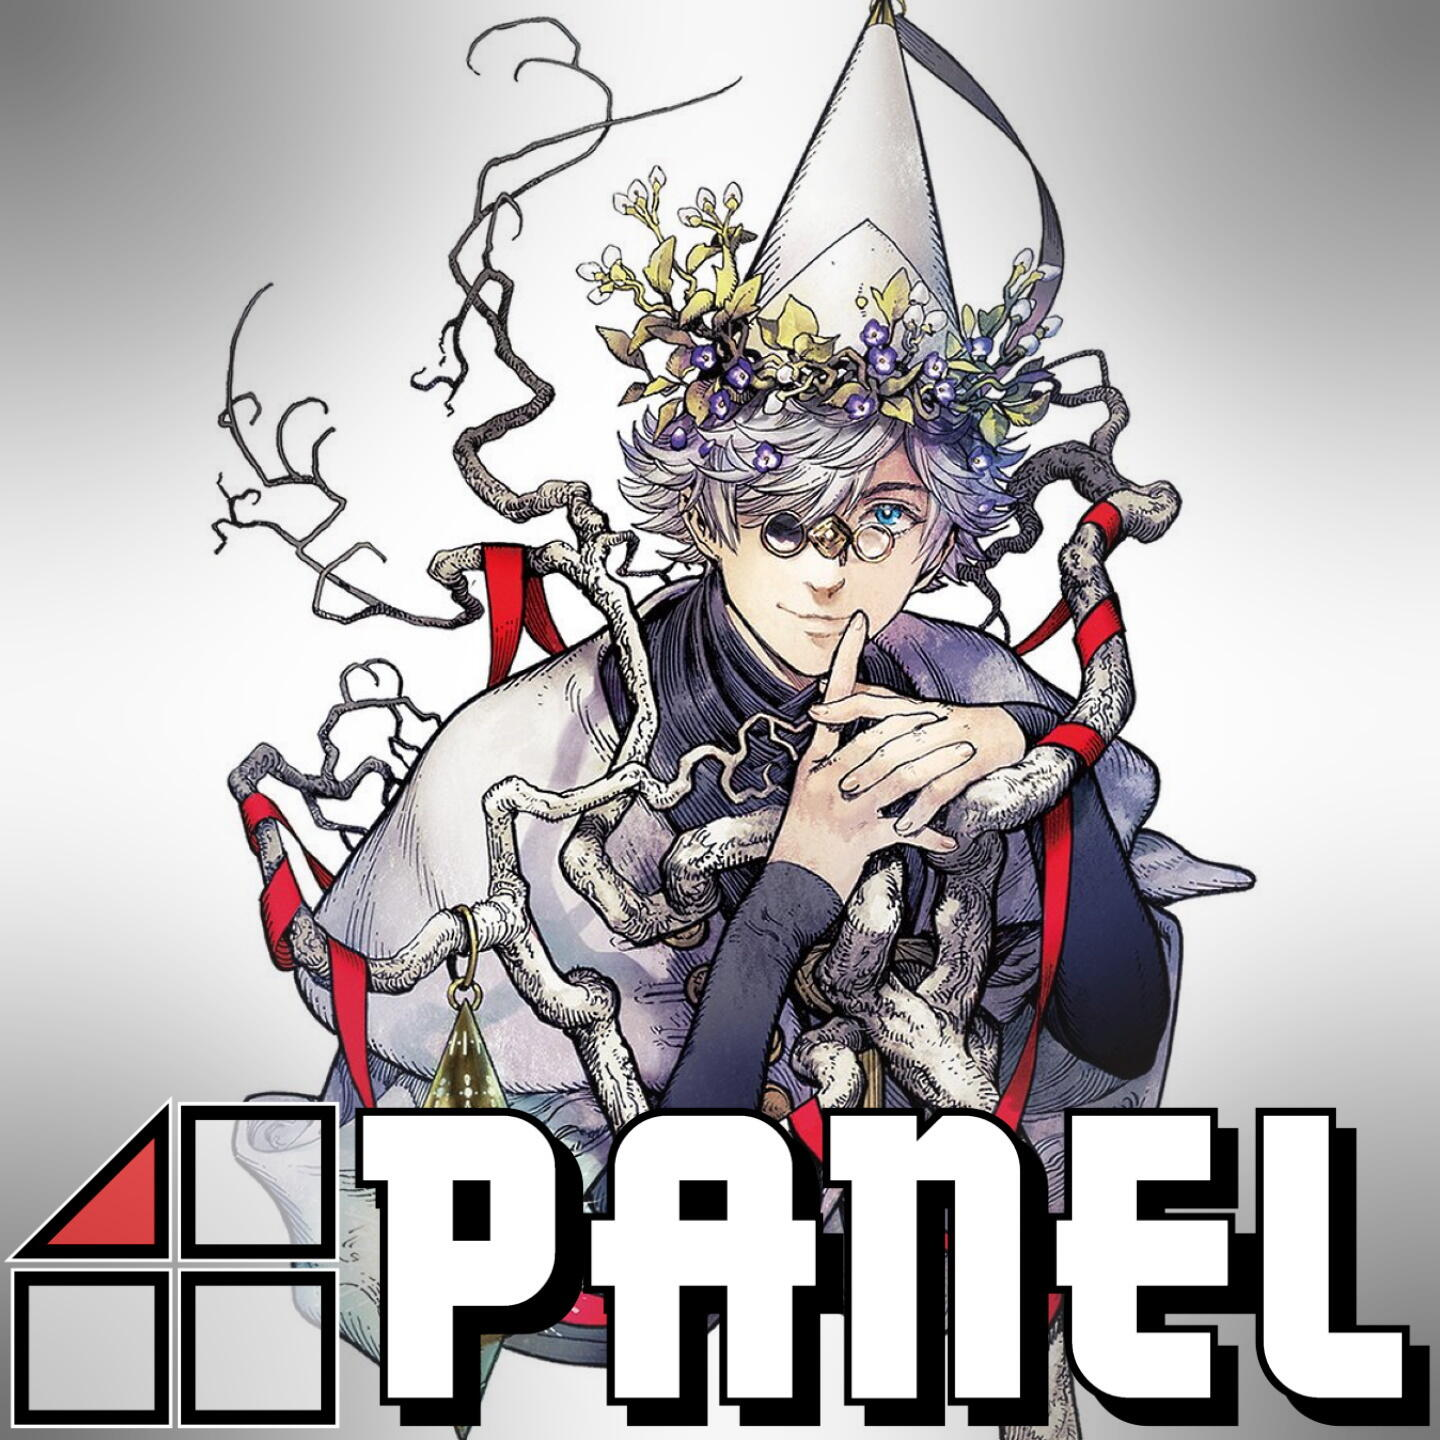 4 Panel Comics Manga Podcast Podtail By a little mummy so small it can fit in the palm of his hand! podtail